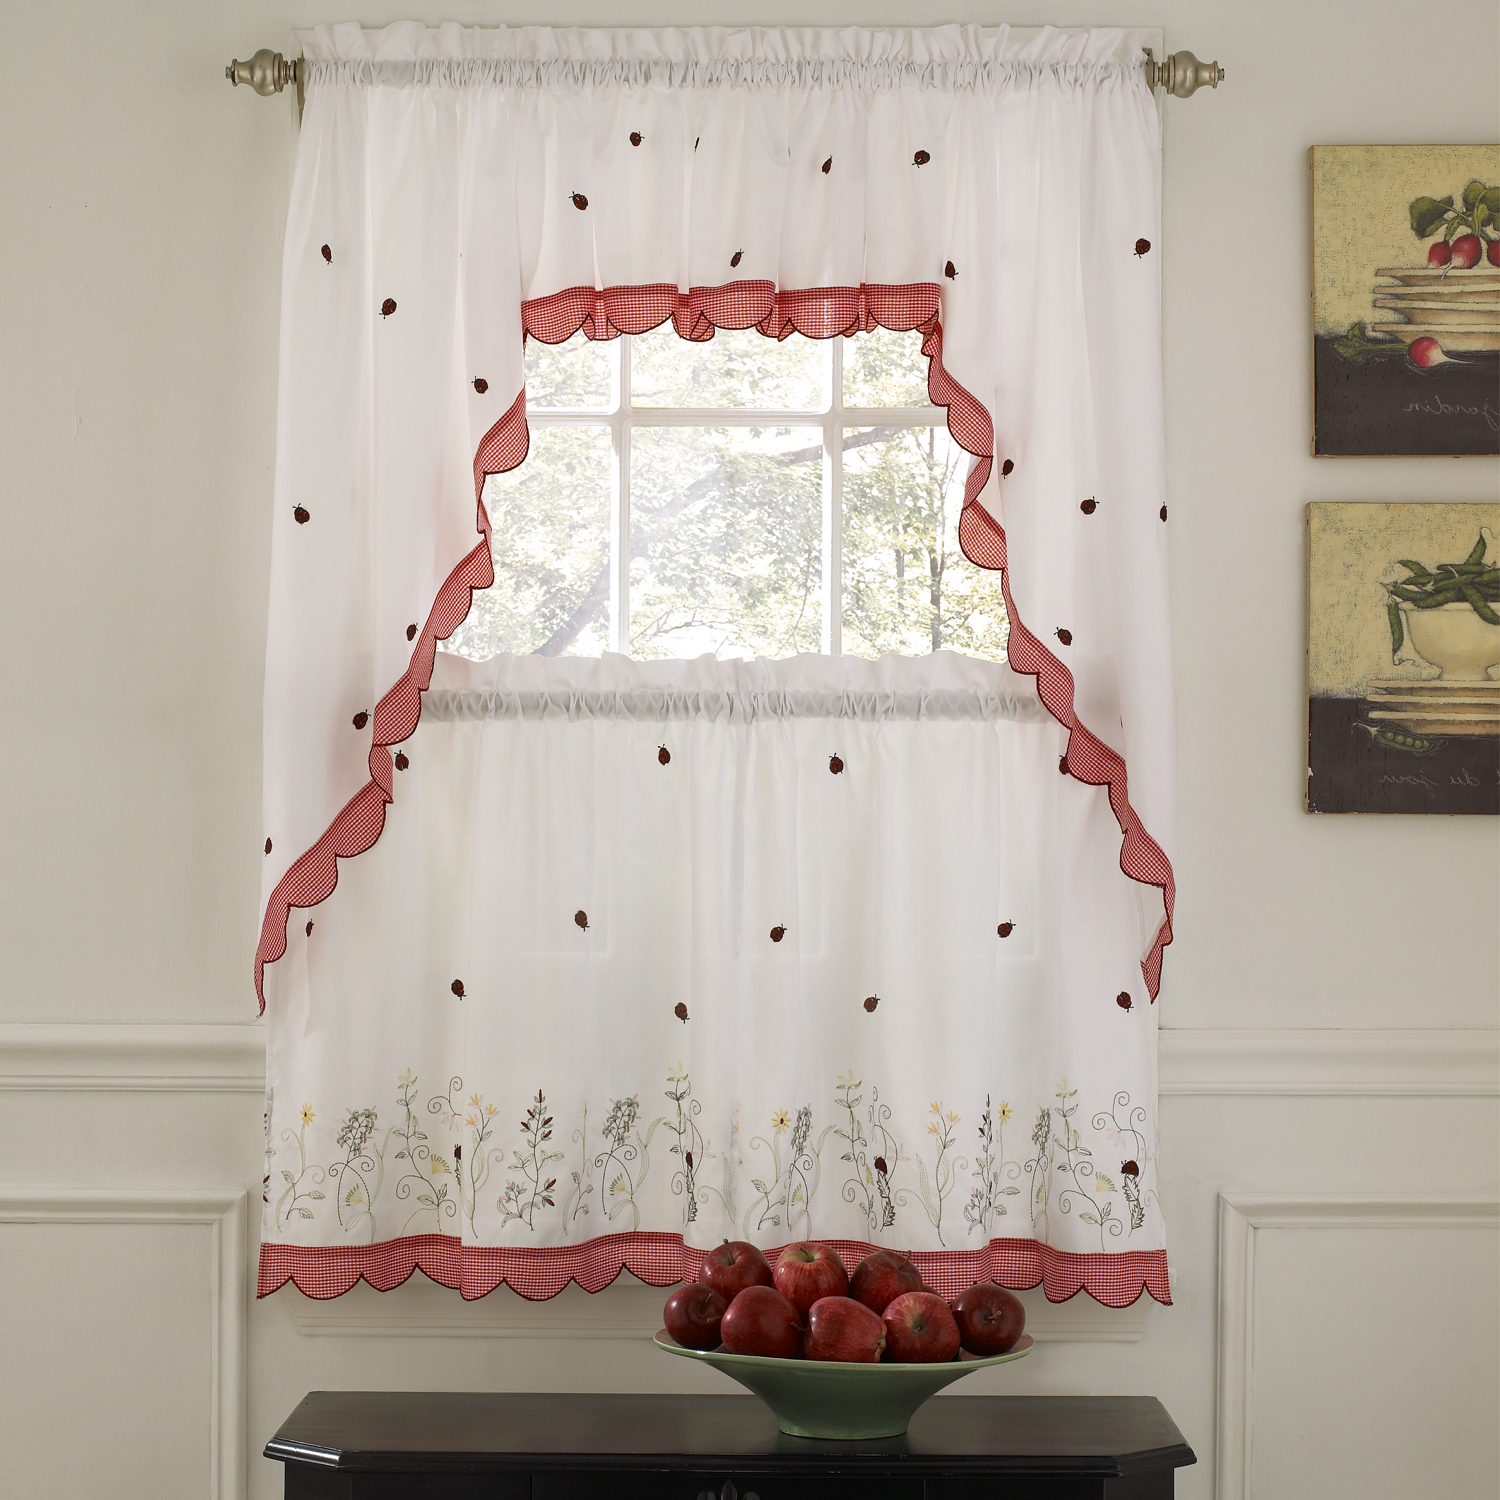 Top Of The Morning Printed Tailored Cottage Curtain Tier Sets Within Most Current Details About Embroidered Ladybug Meadow Kitchen Curtains Choice Of Tiers Or Valance Or Swags (View 10 of 20)